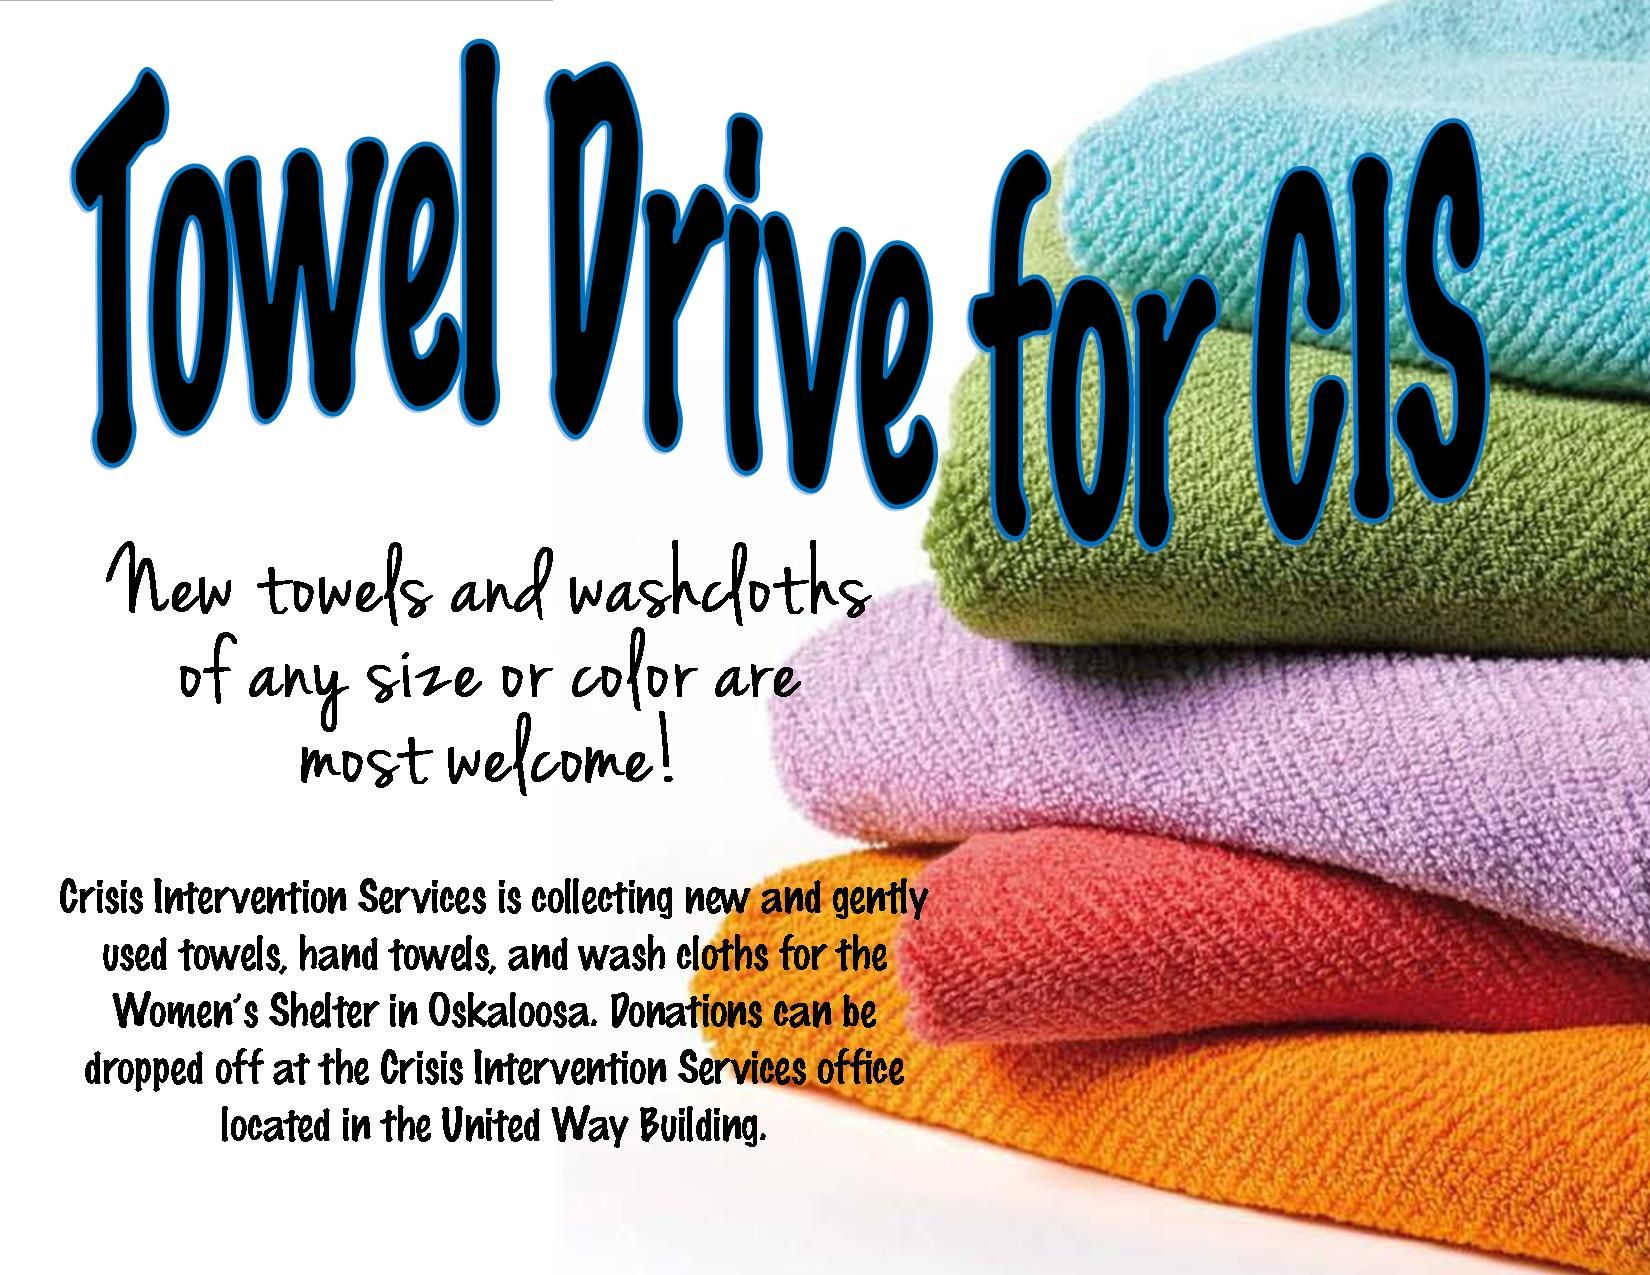 Help CIS by donating towels to our shelter 3/13/15